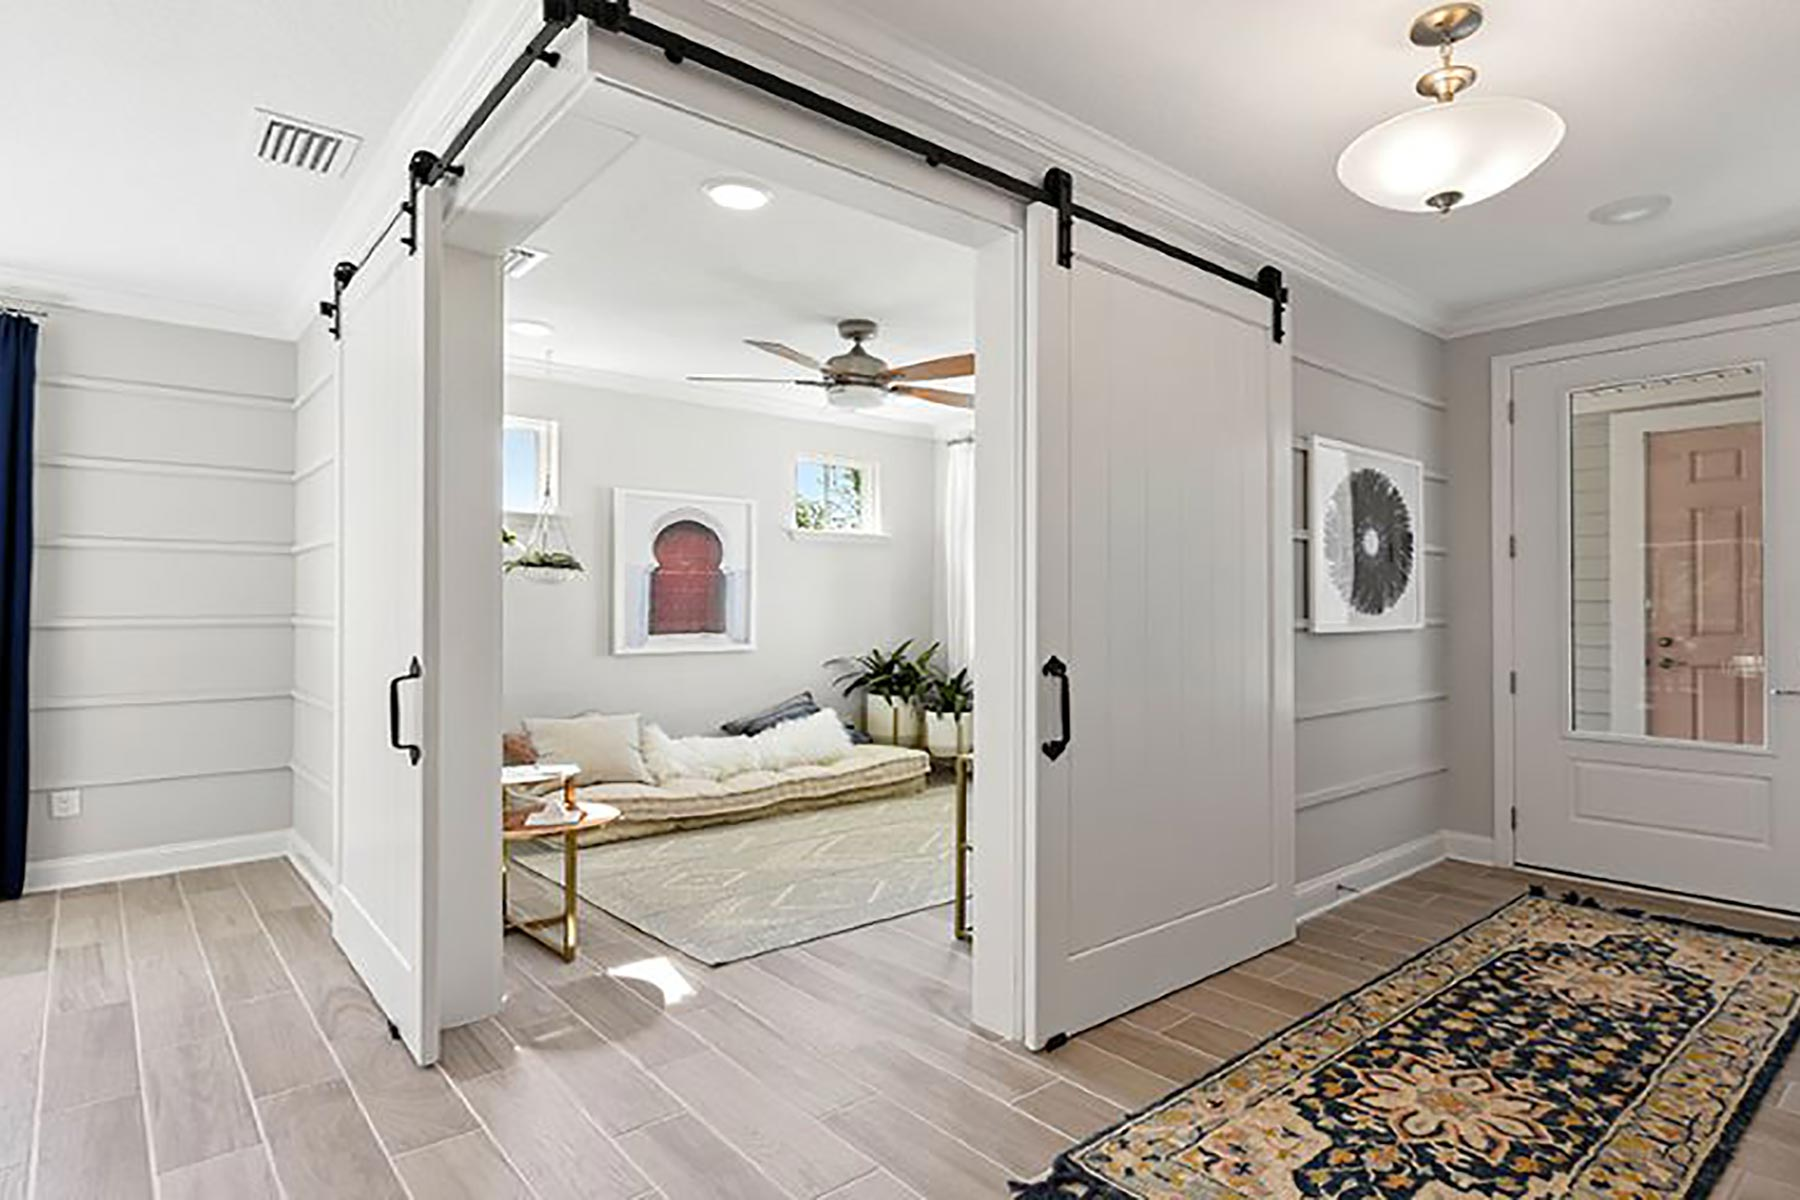 River Plan Study Room at RiverTown - WaterSong in St. Johns Florida by Mattamy Homes